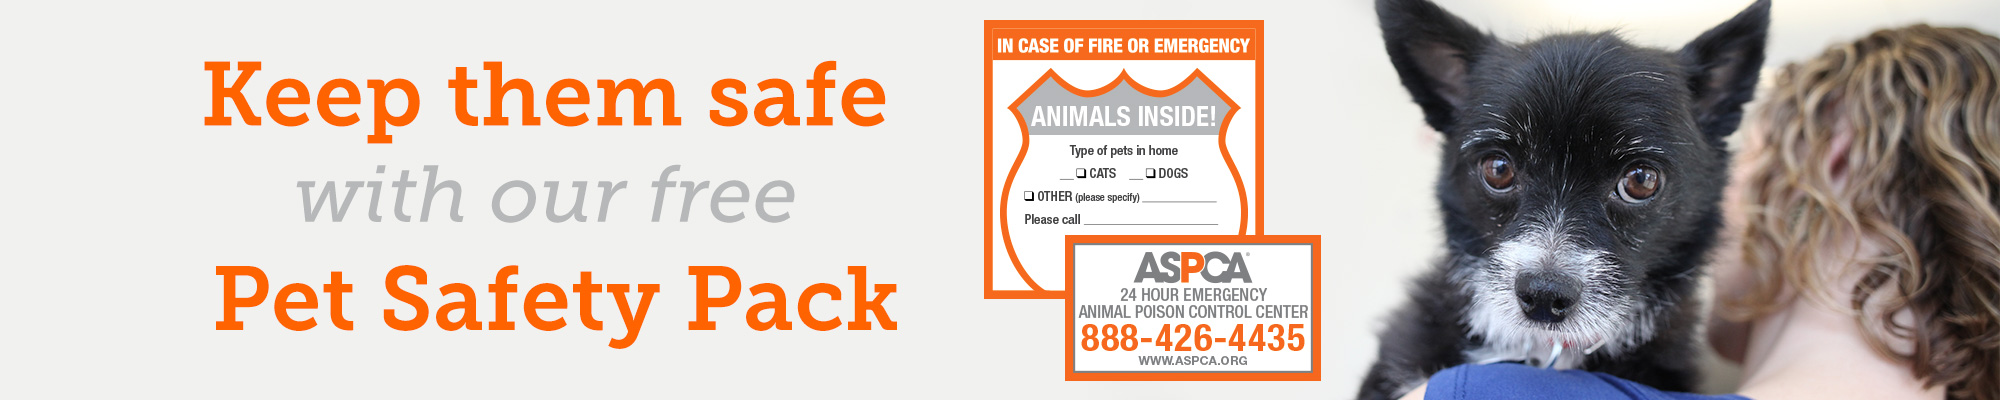 Free Pet Safety Pack From The ASCPA